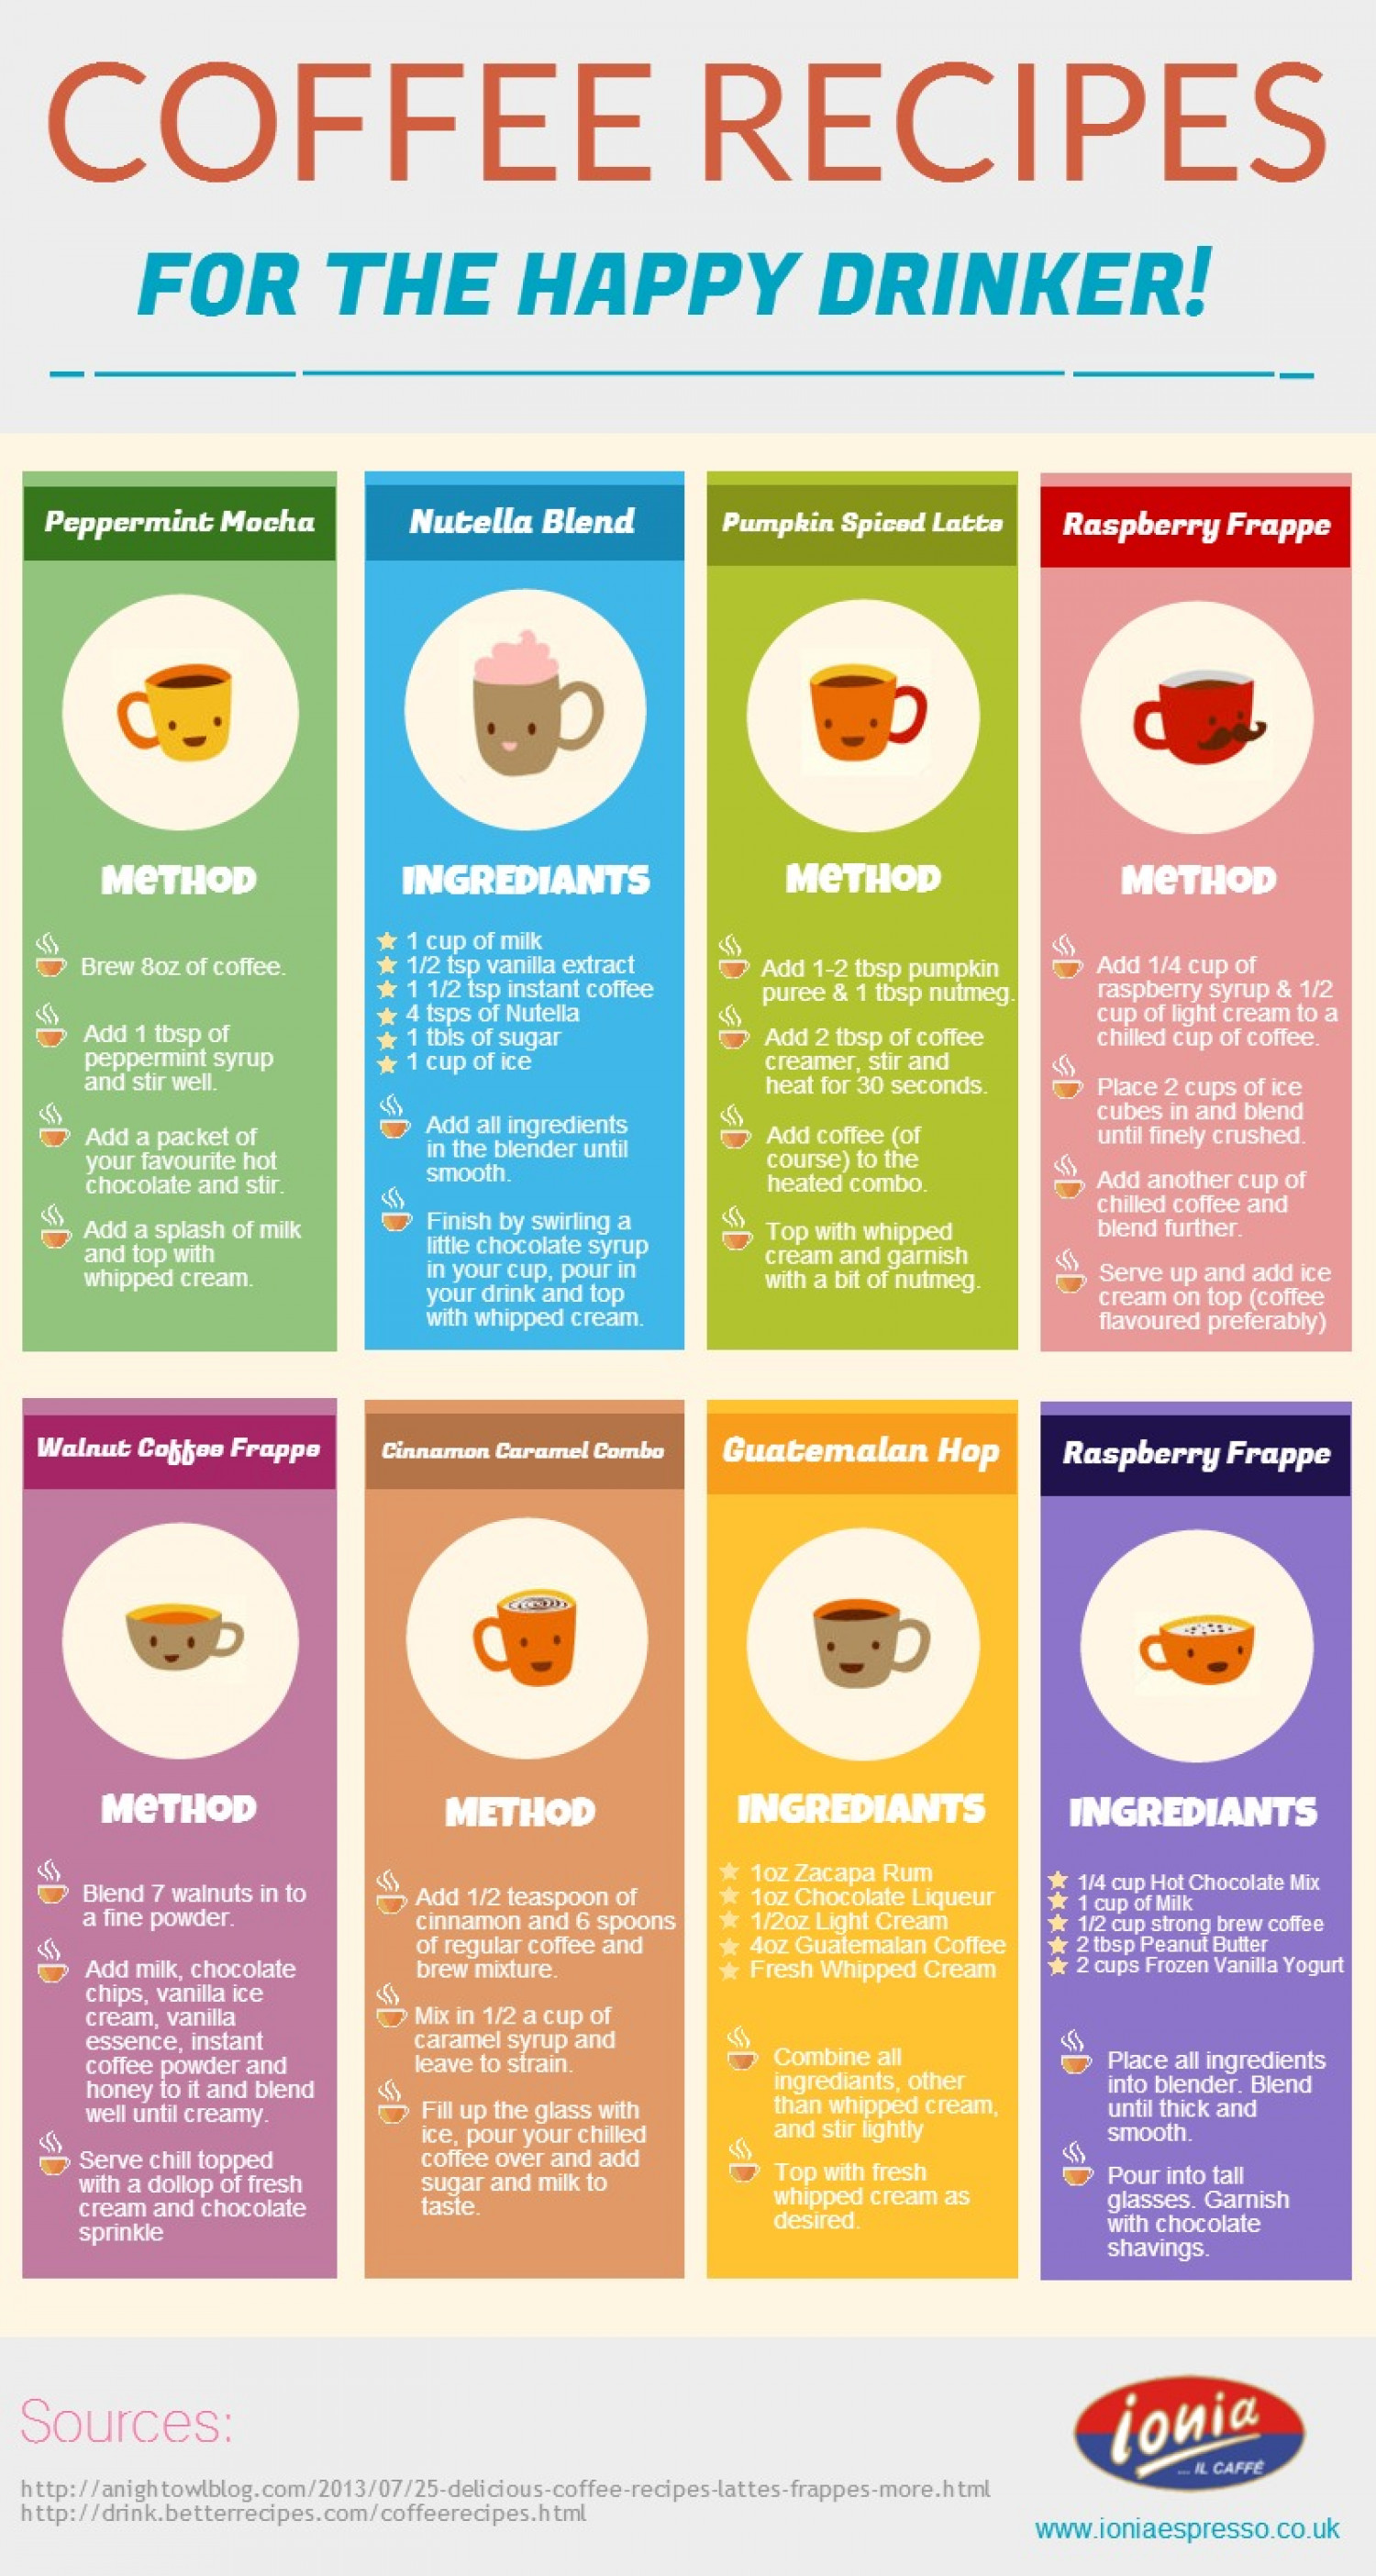 Creative Coffee Recipes for the Happy Drinker Infographic